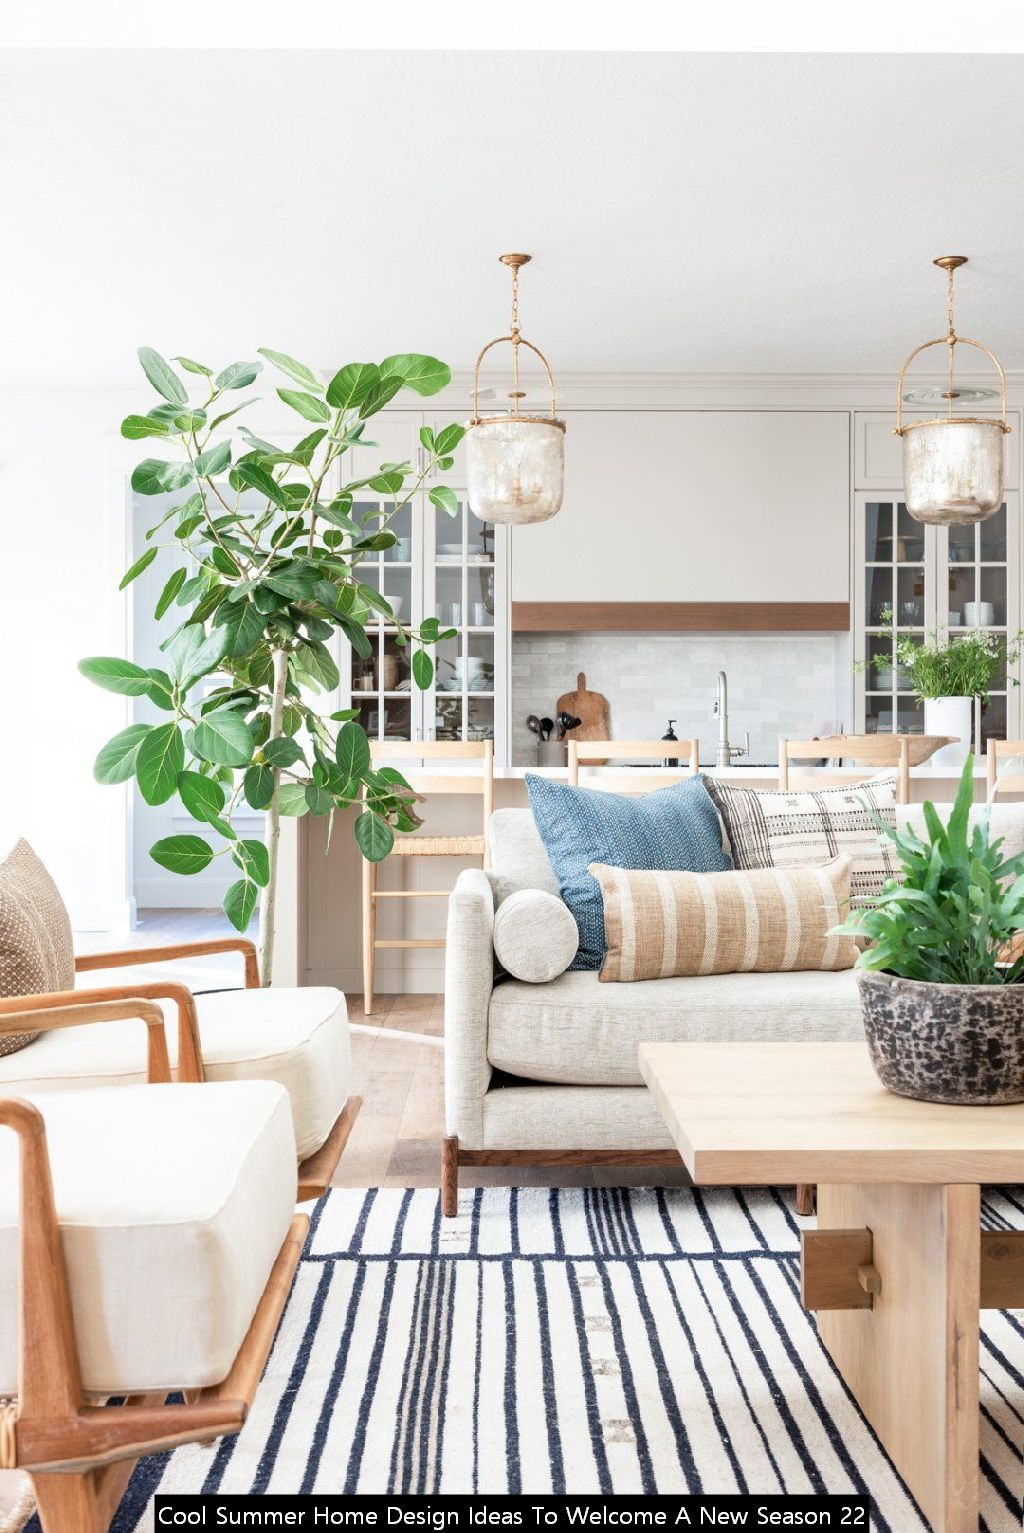 Cool Summer Home Design Ideas To Welcome A New Season 22